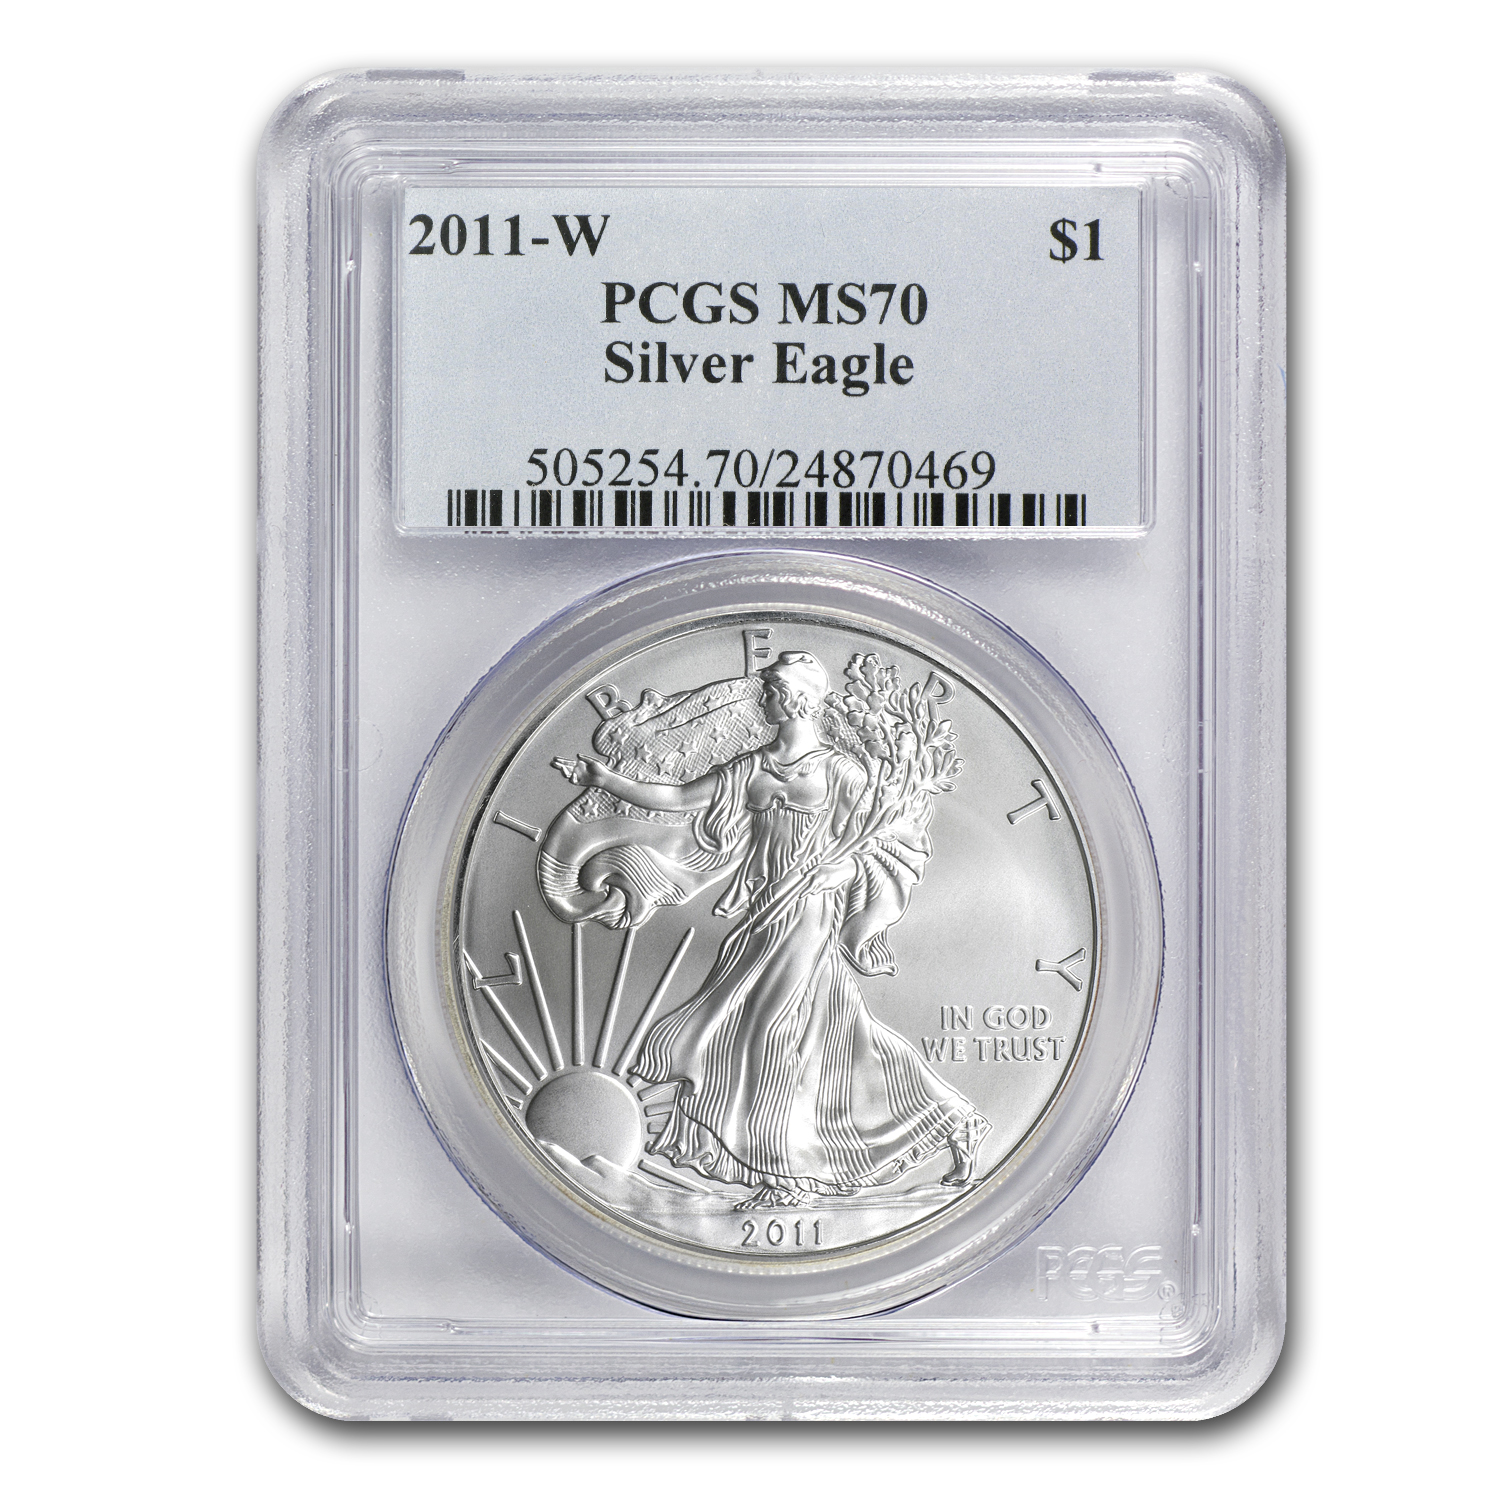 2011-W Burnished Silver American Eagle MS-70 PCGS